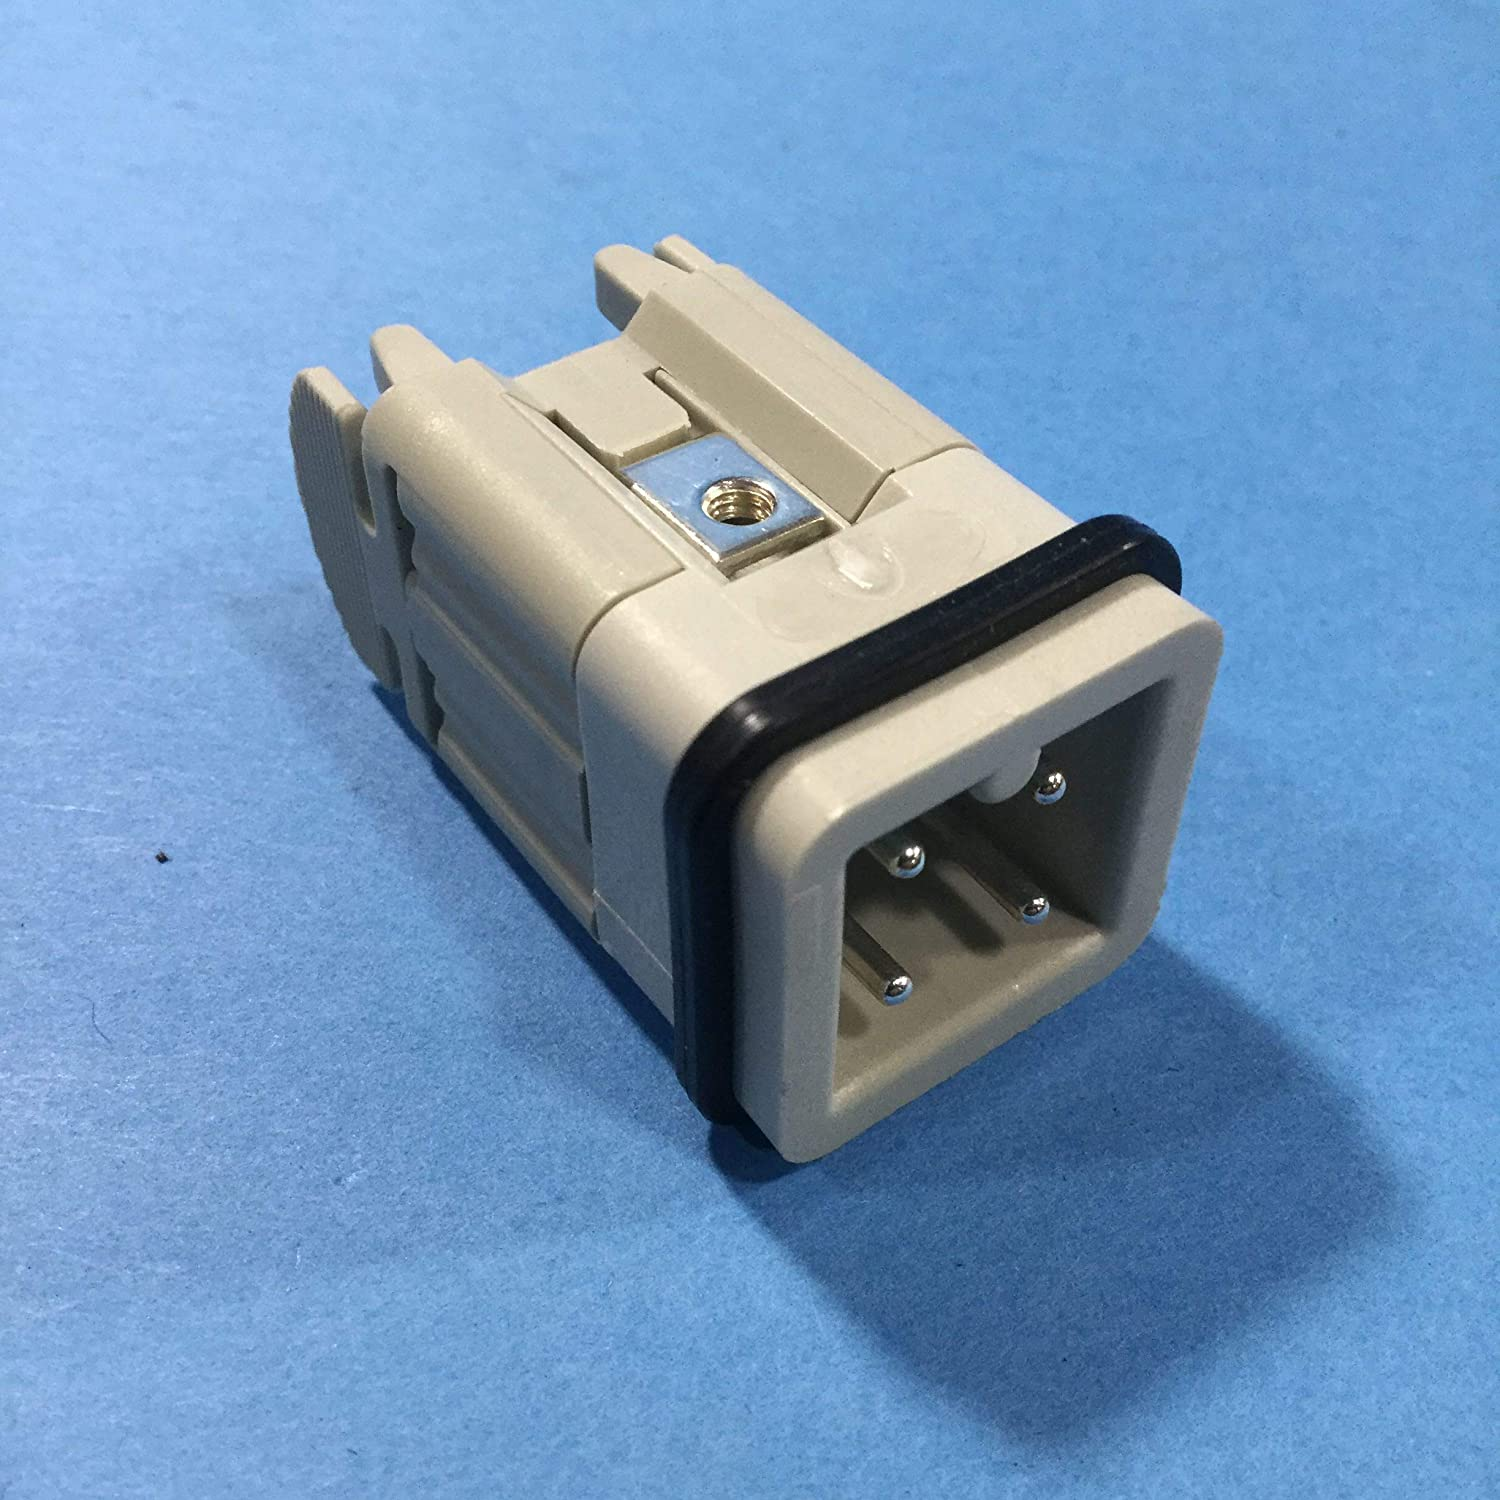 Lapp Kabel 10420000 Epic H-A 3 SS Insert with Screw Termination